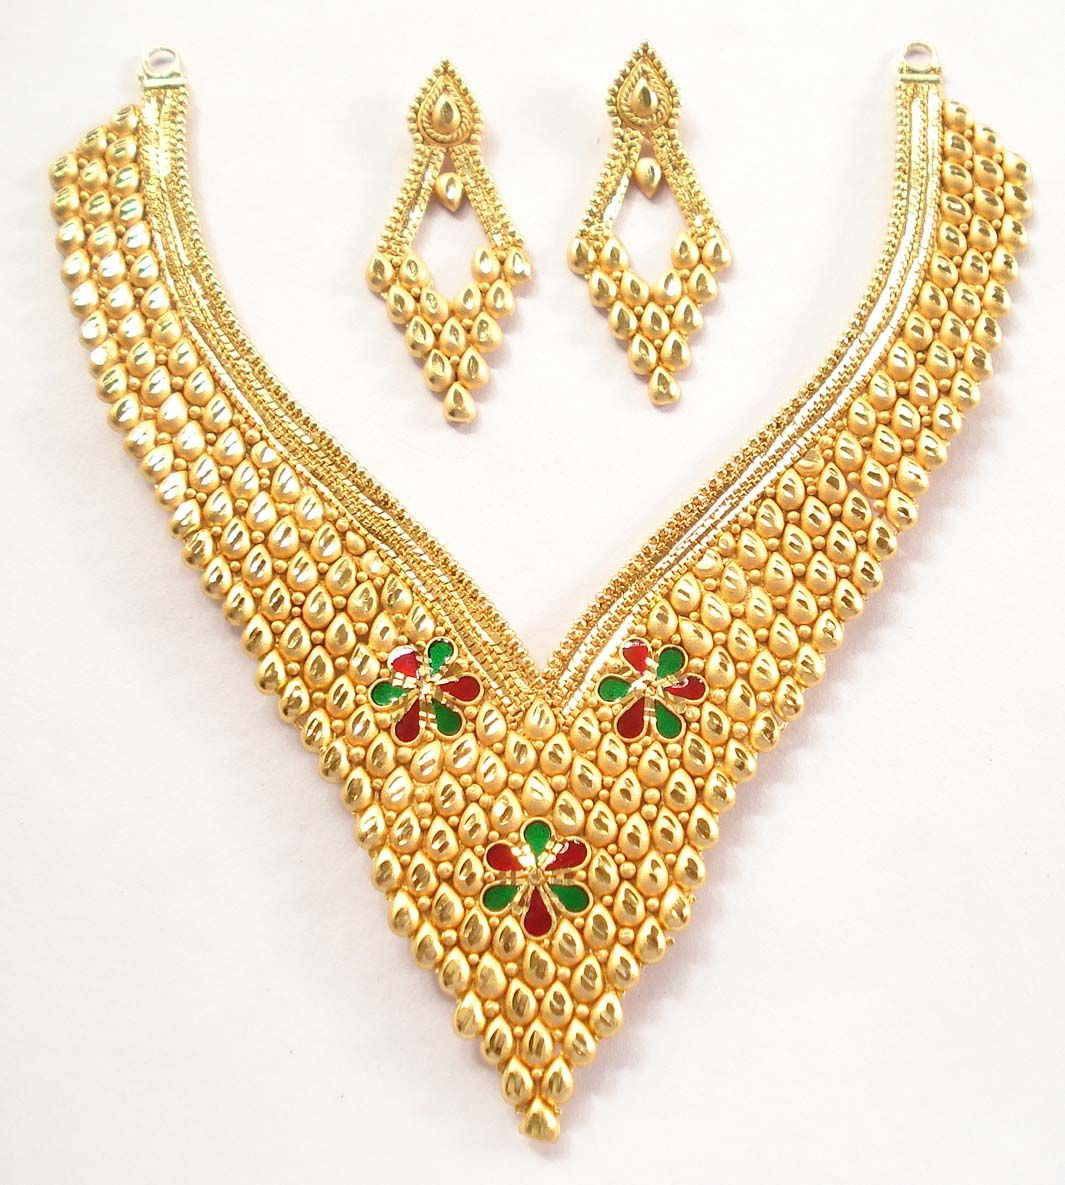 Images For > Gold Jewelry Designs 2014 | "|1065|1185|?|en|2|79c621f39e383948618b3b2283213fc0|False|UNLIKELY|0.3053666949272156